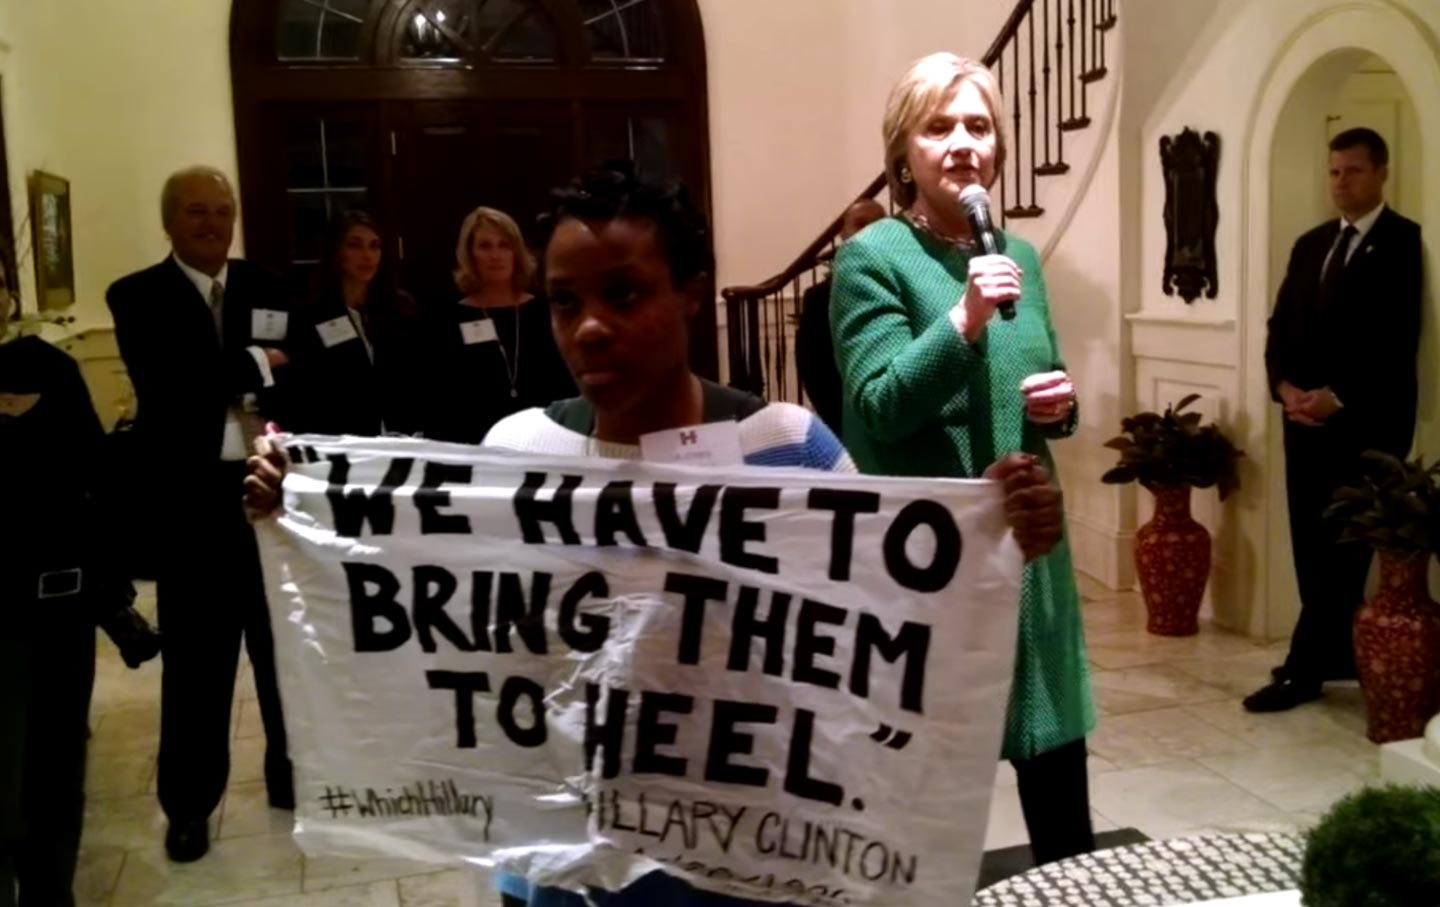 #WhichHillary? #BlackLivesMatter Activist Demands Apology from Clinton for